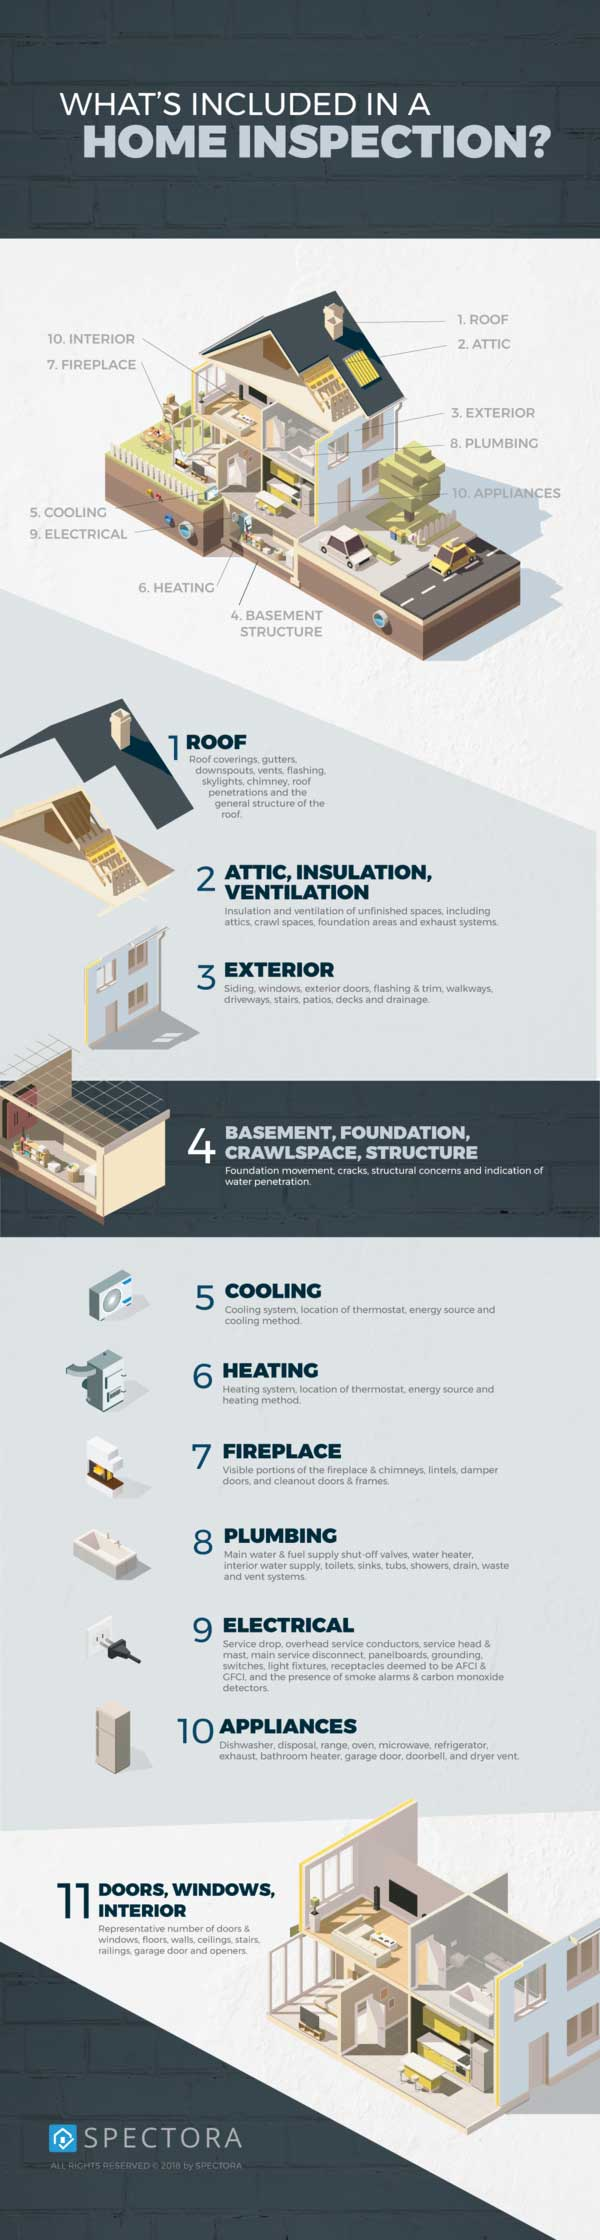 Infographic of what to expect during a home inspection